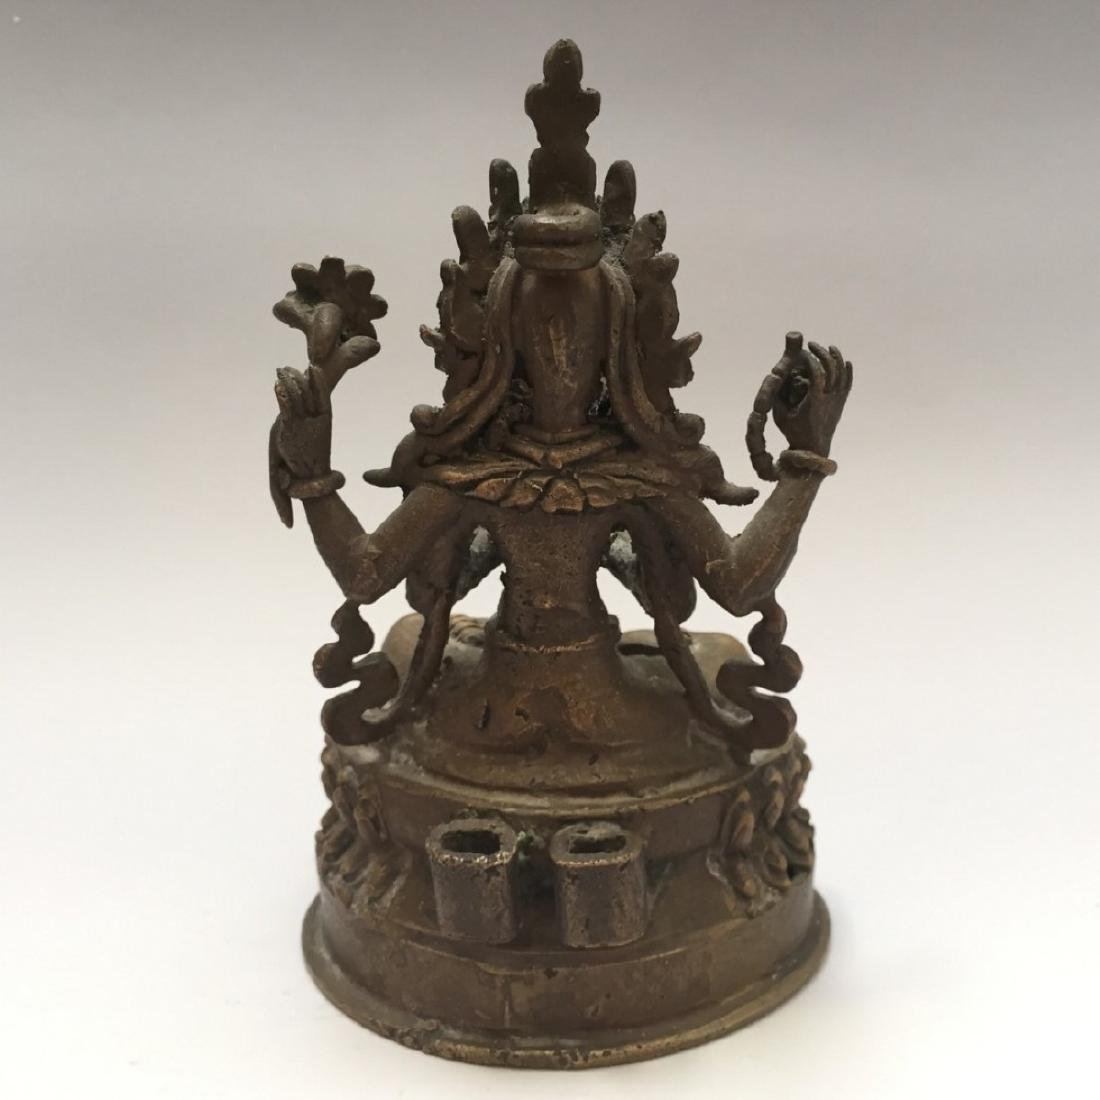 ANTIQUE TIBETAN BRONZE BUDDHA FIGURE - 4